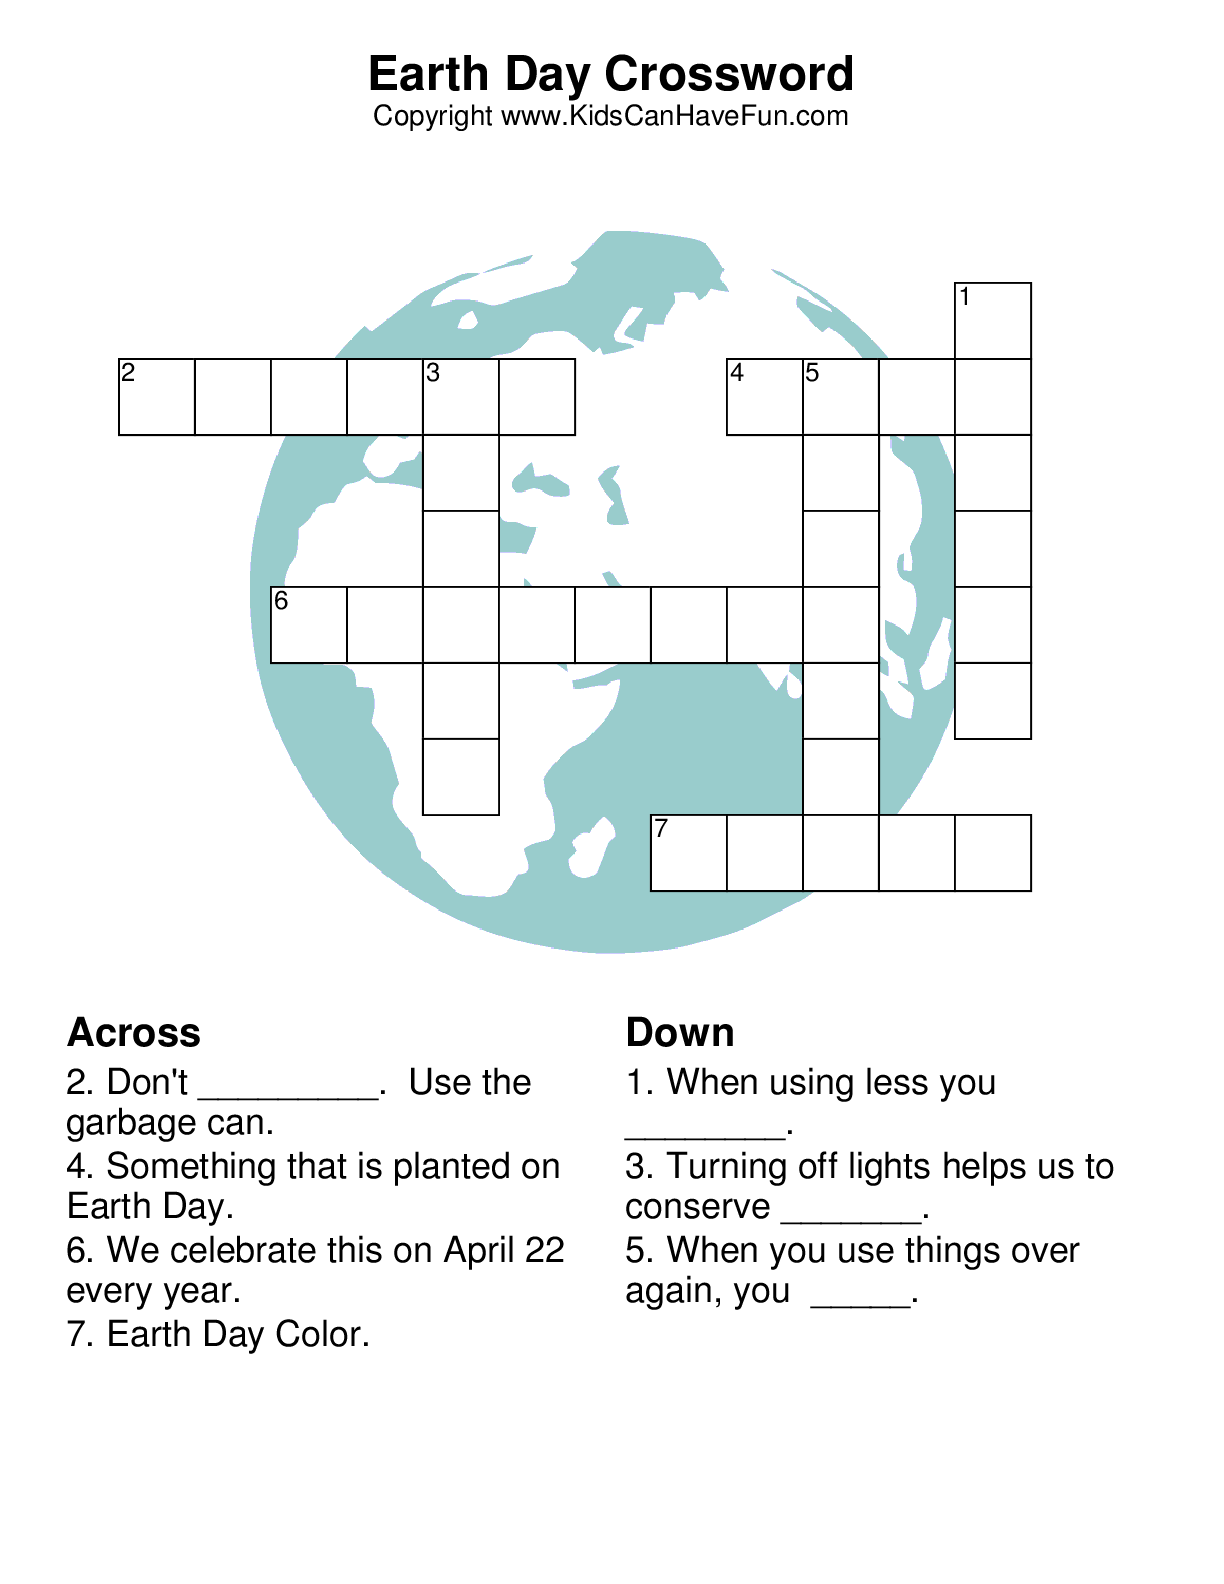 Earth Day Crossword